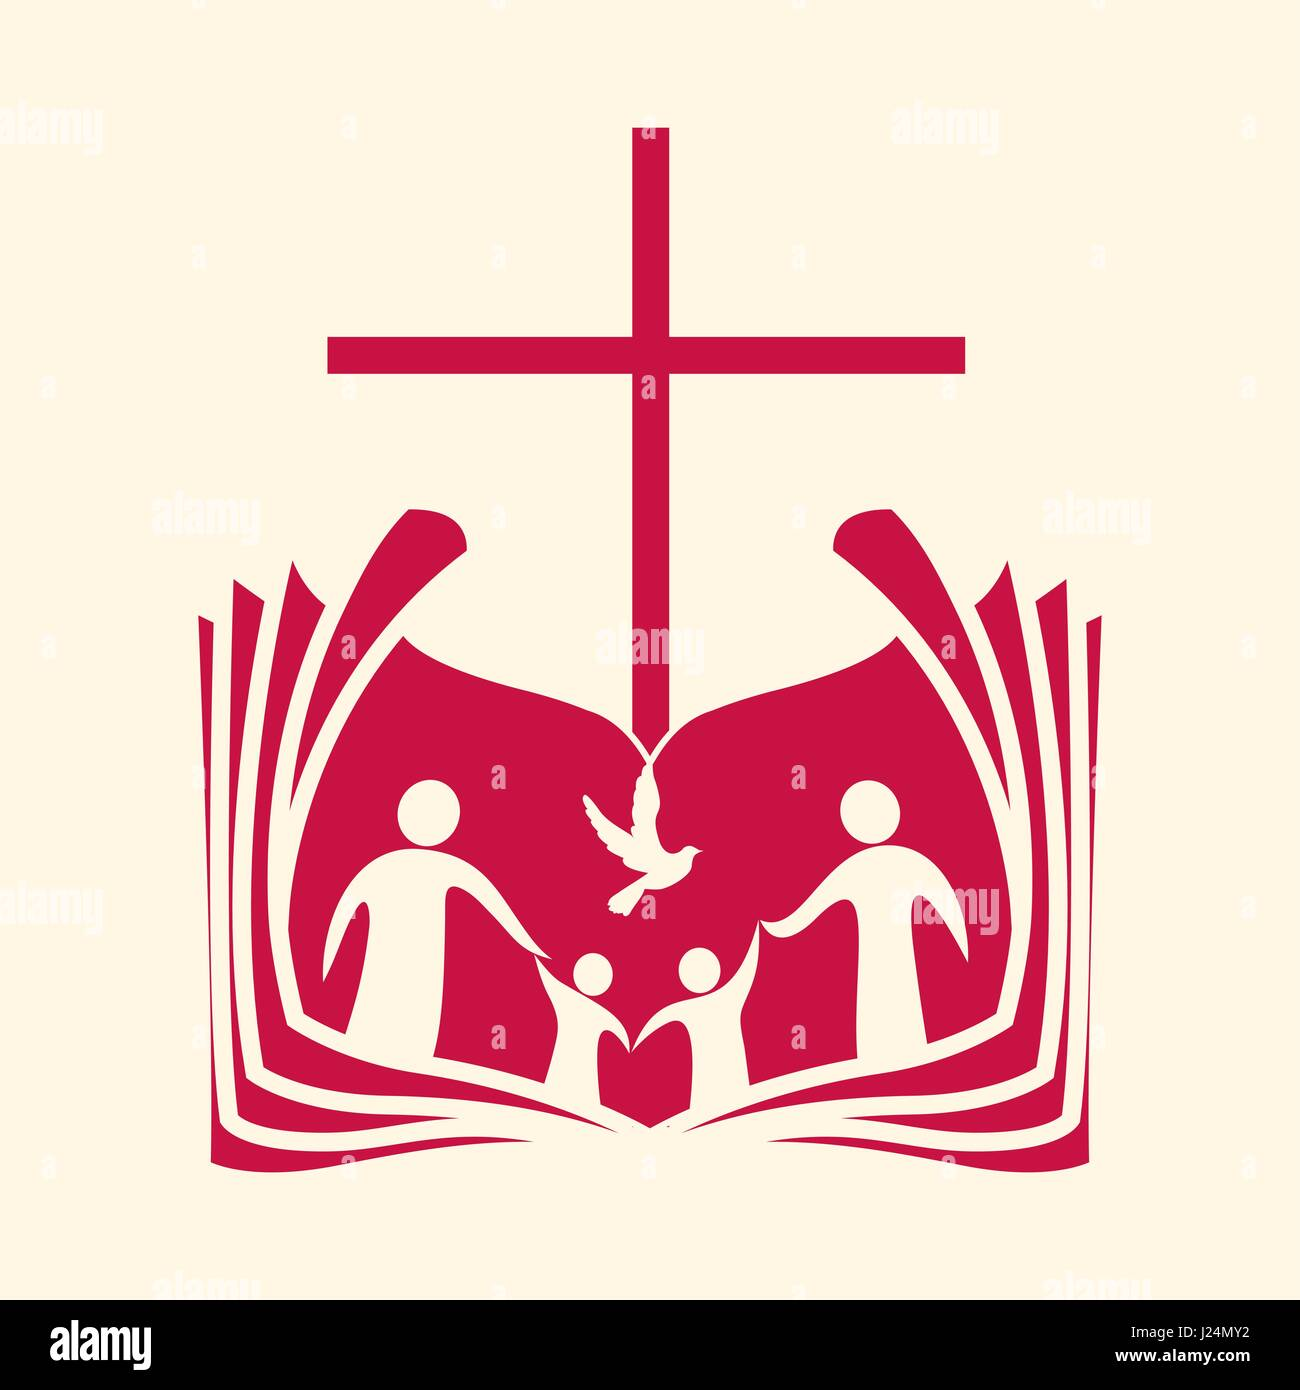 church logo christian symbols the christian family the bible